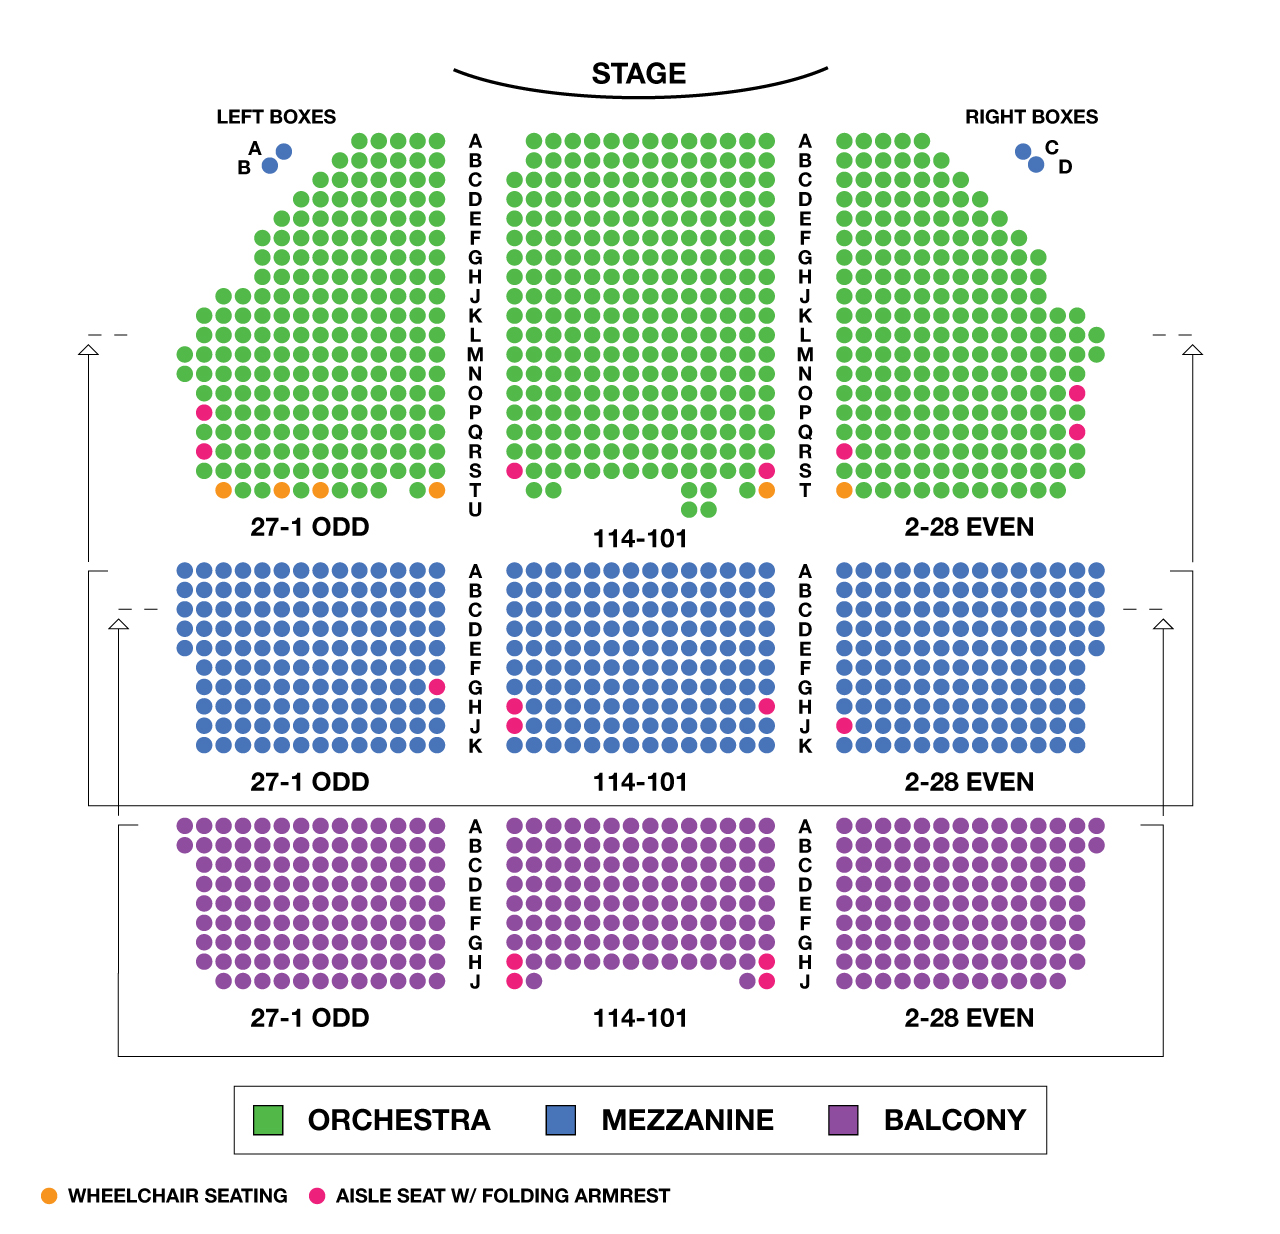 Shubert theatre large broadway seating charts toronto for Broadway plan